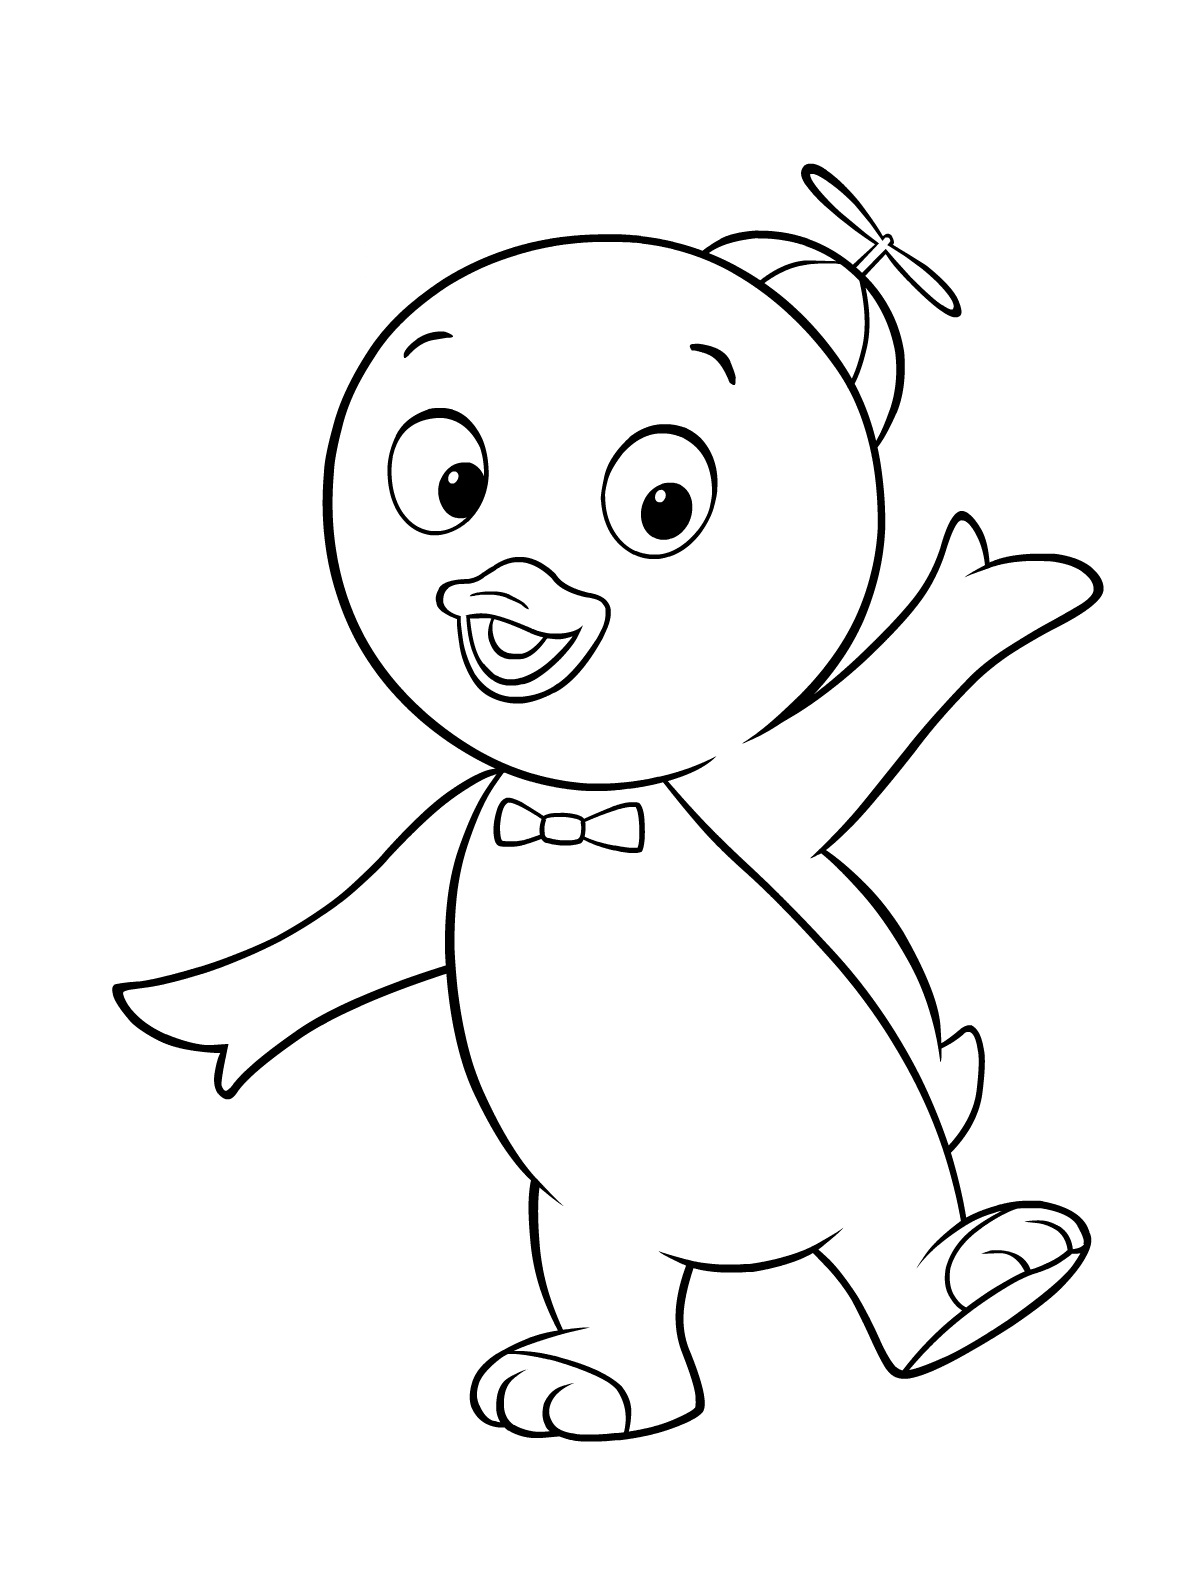 Free printable backyardigans coloring pages for kids for Free online color pages